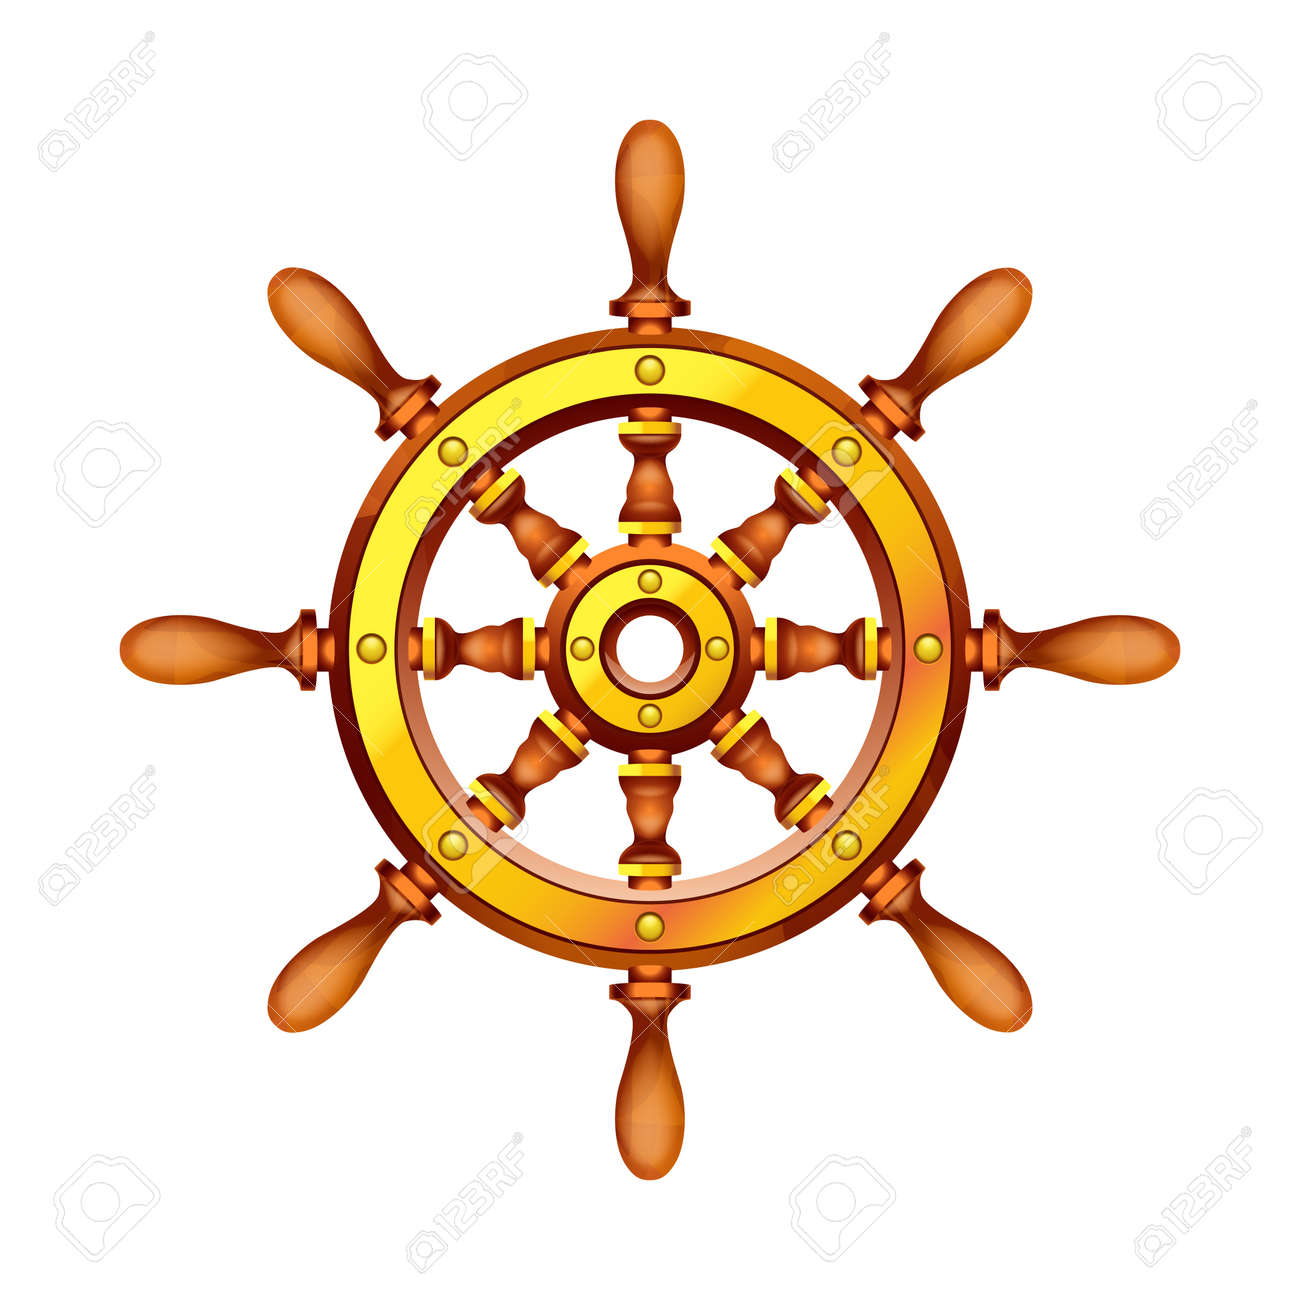 Illustration Of Wooden Boat Steering Wheel On White Background Royalty Free Cliparts Vetores E Ilustracoes Stock Image 53664092